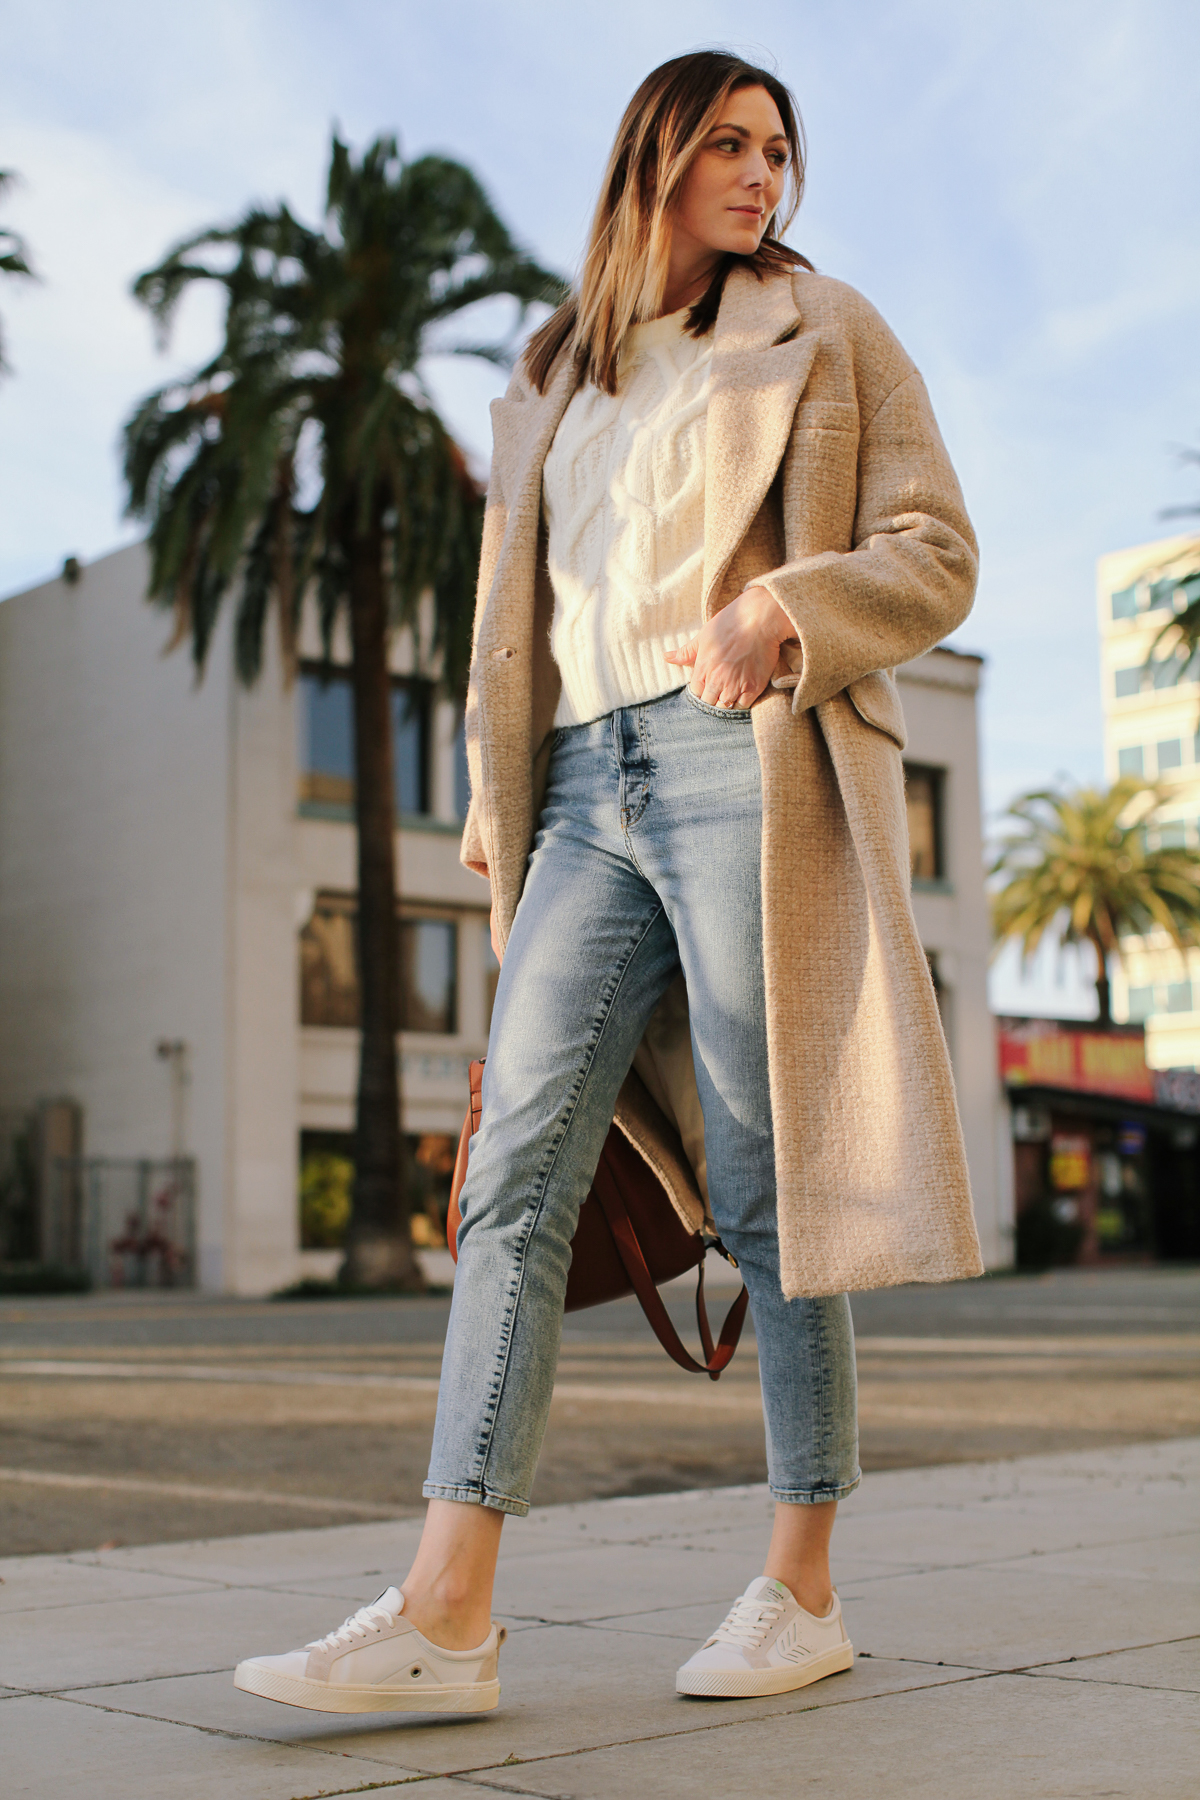 Cute Winter Coats for Women by popular LA fashion blog, Tea Cups and Tulips: image of a woman outside wearing a Zara wool winter coat, H&M Cable-knit Sweater, H&M Mom High Ankle Jeans, and Caiuma White /Ice Leather sneakers.